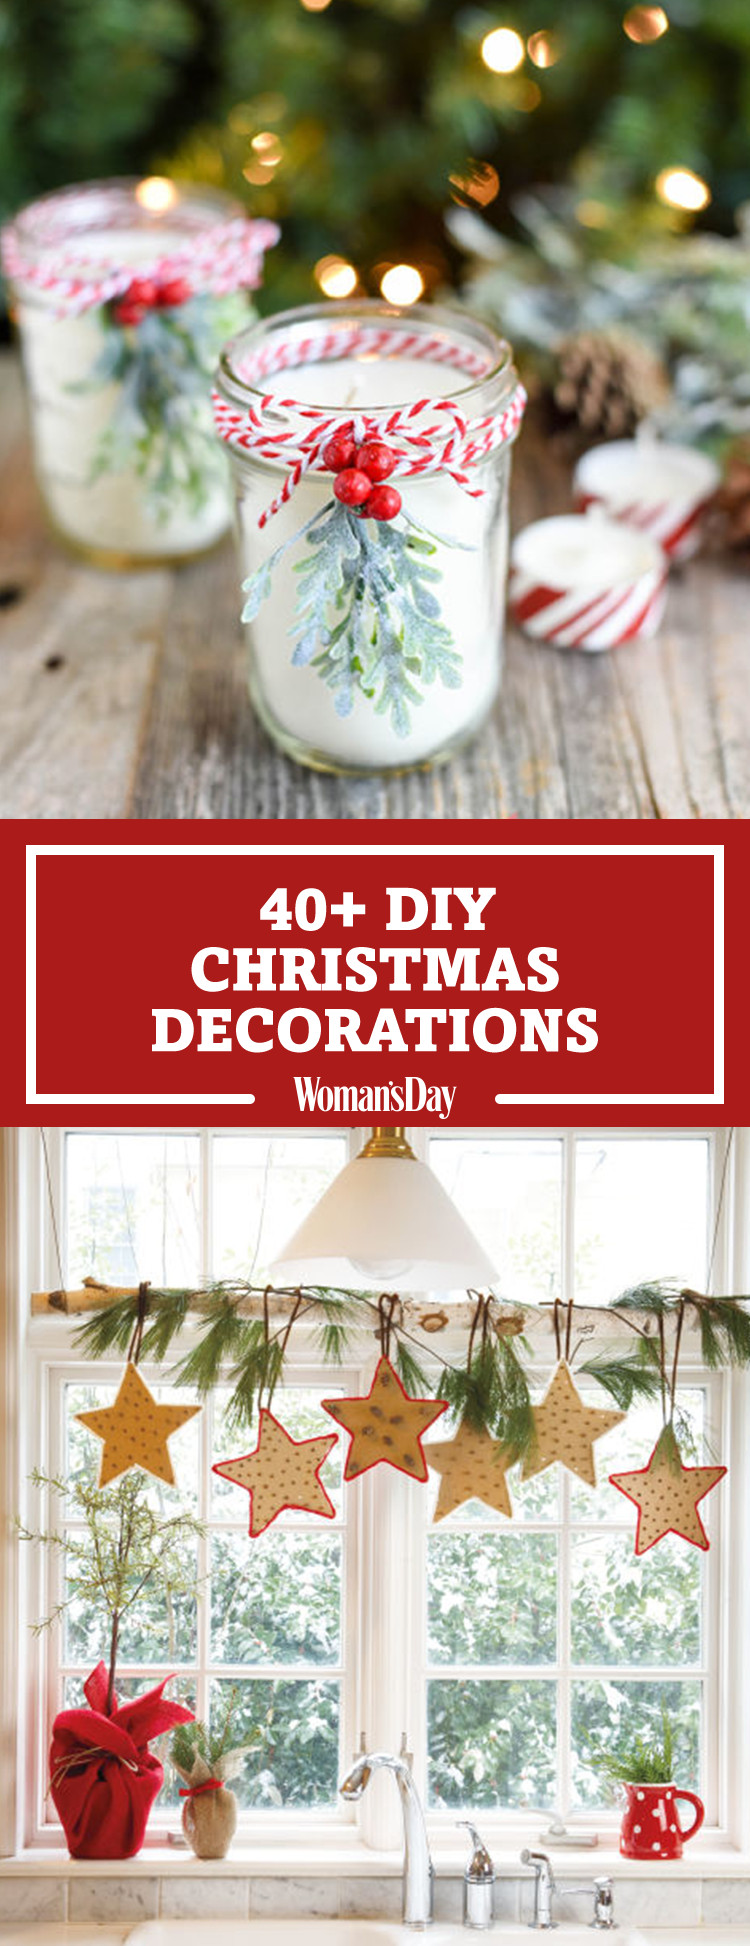 Best ideas about Christmas DIY Ideas . Save or Pin 47 Easy DIY Christmas Decorations Homemade Ideas for Now.